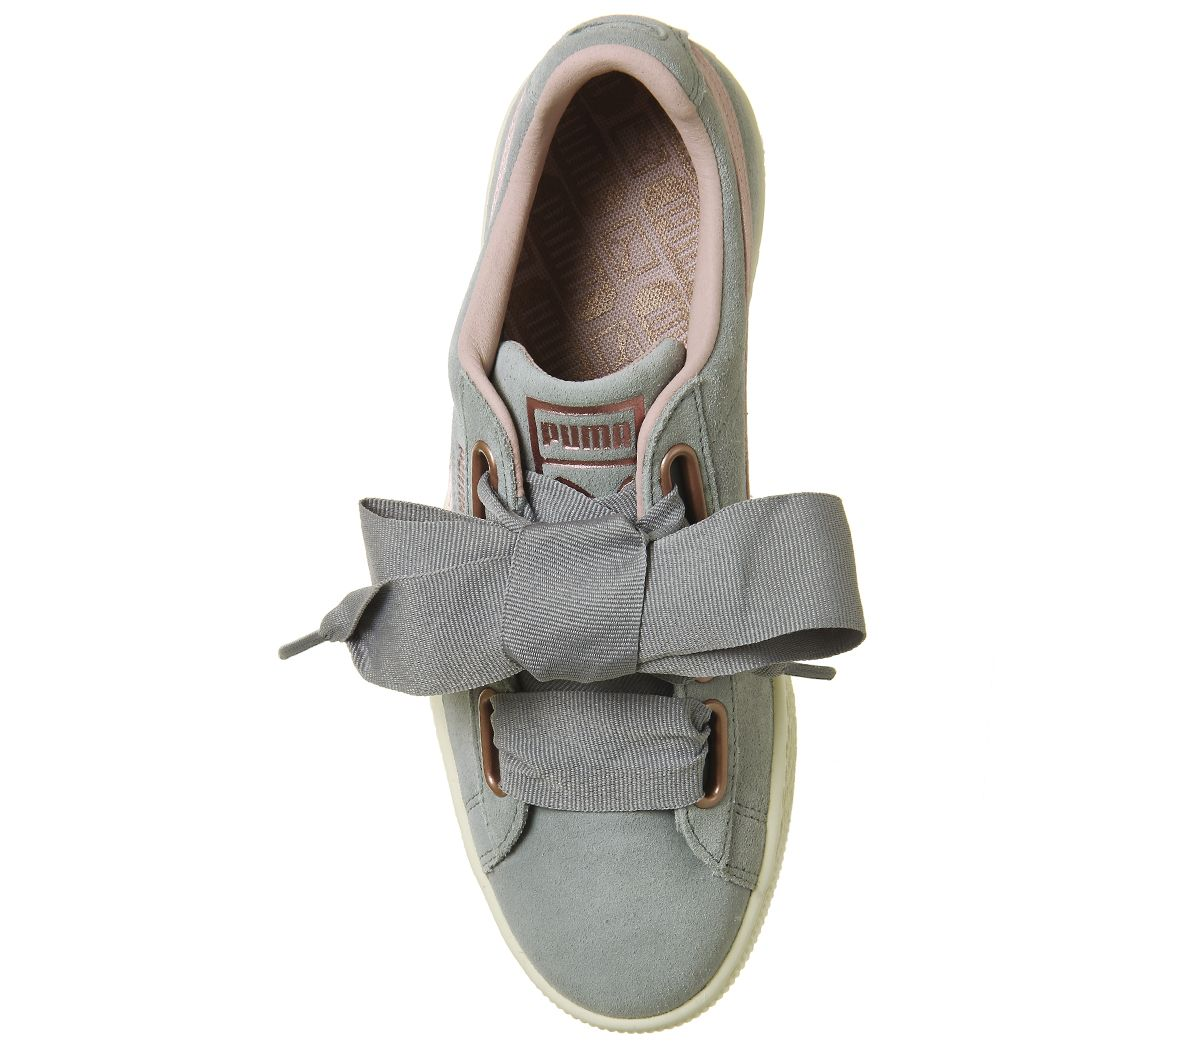 39bbede1 Womens Puma Suede Heart Trainers Quarry Silver Pink Rose Gold ...